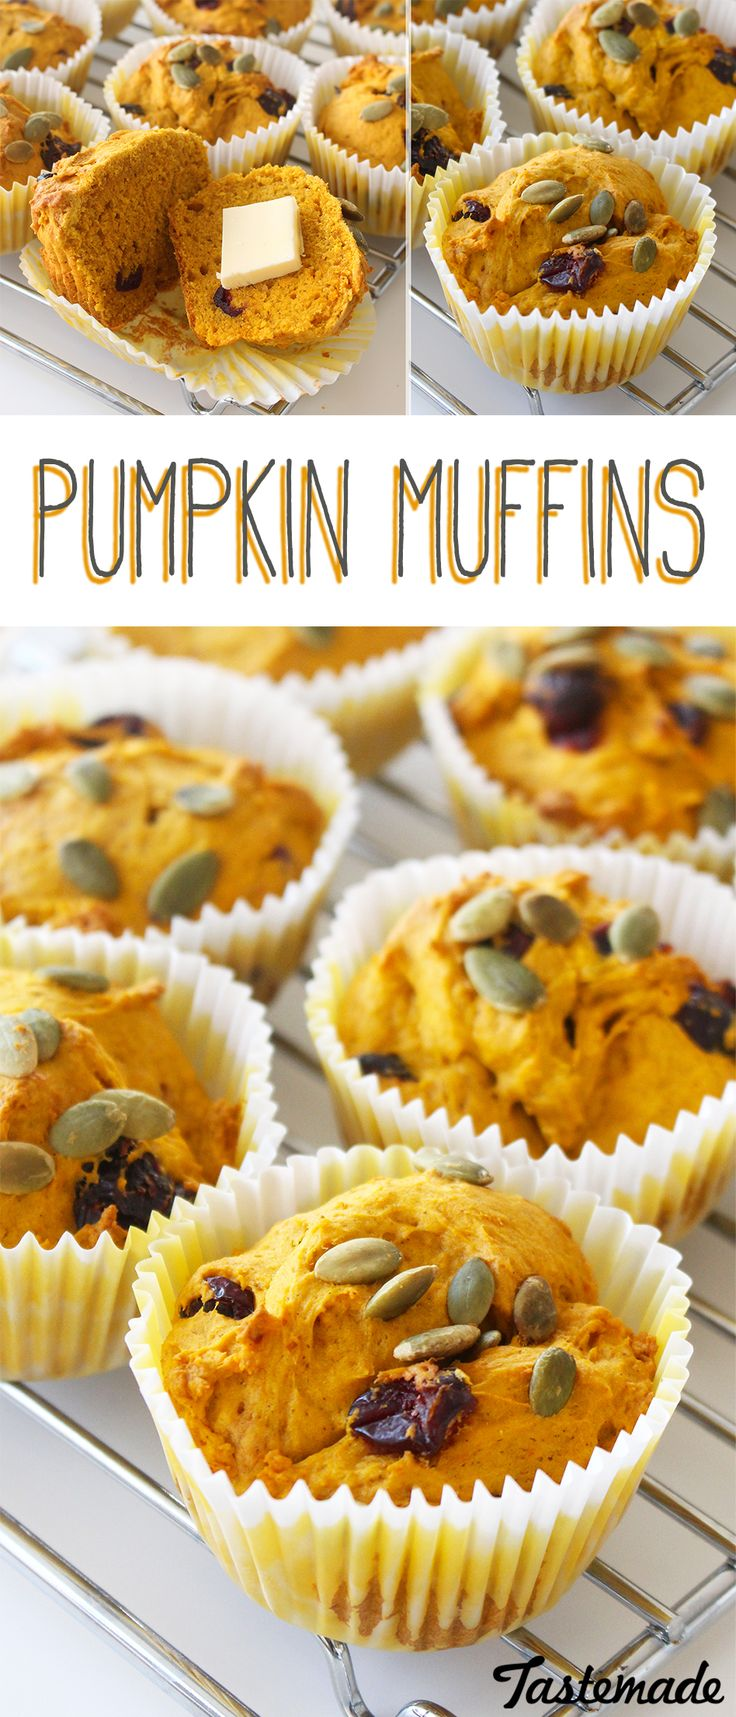 Filled with spices and dried cranberries, these muffins are perfect for breakfast ... or whenever!